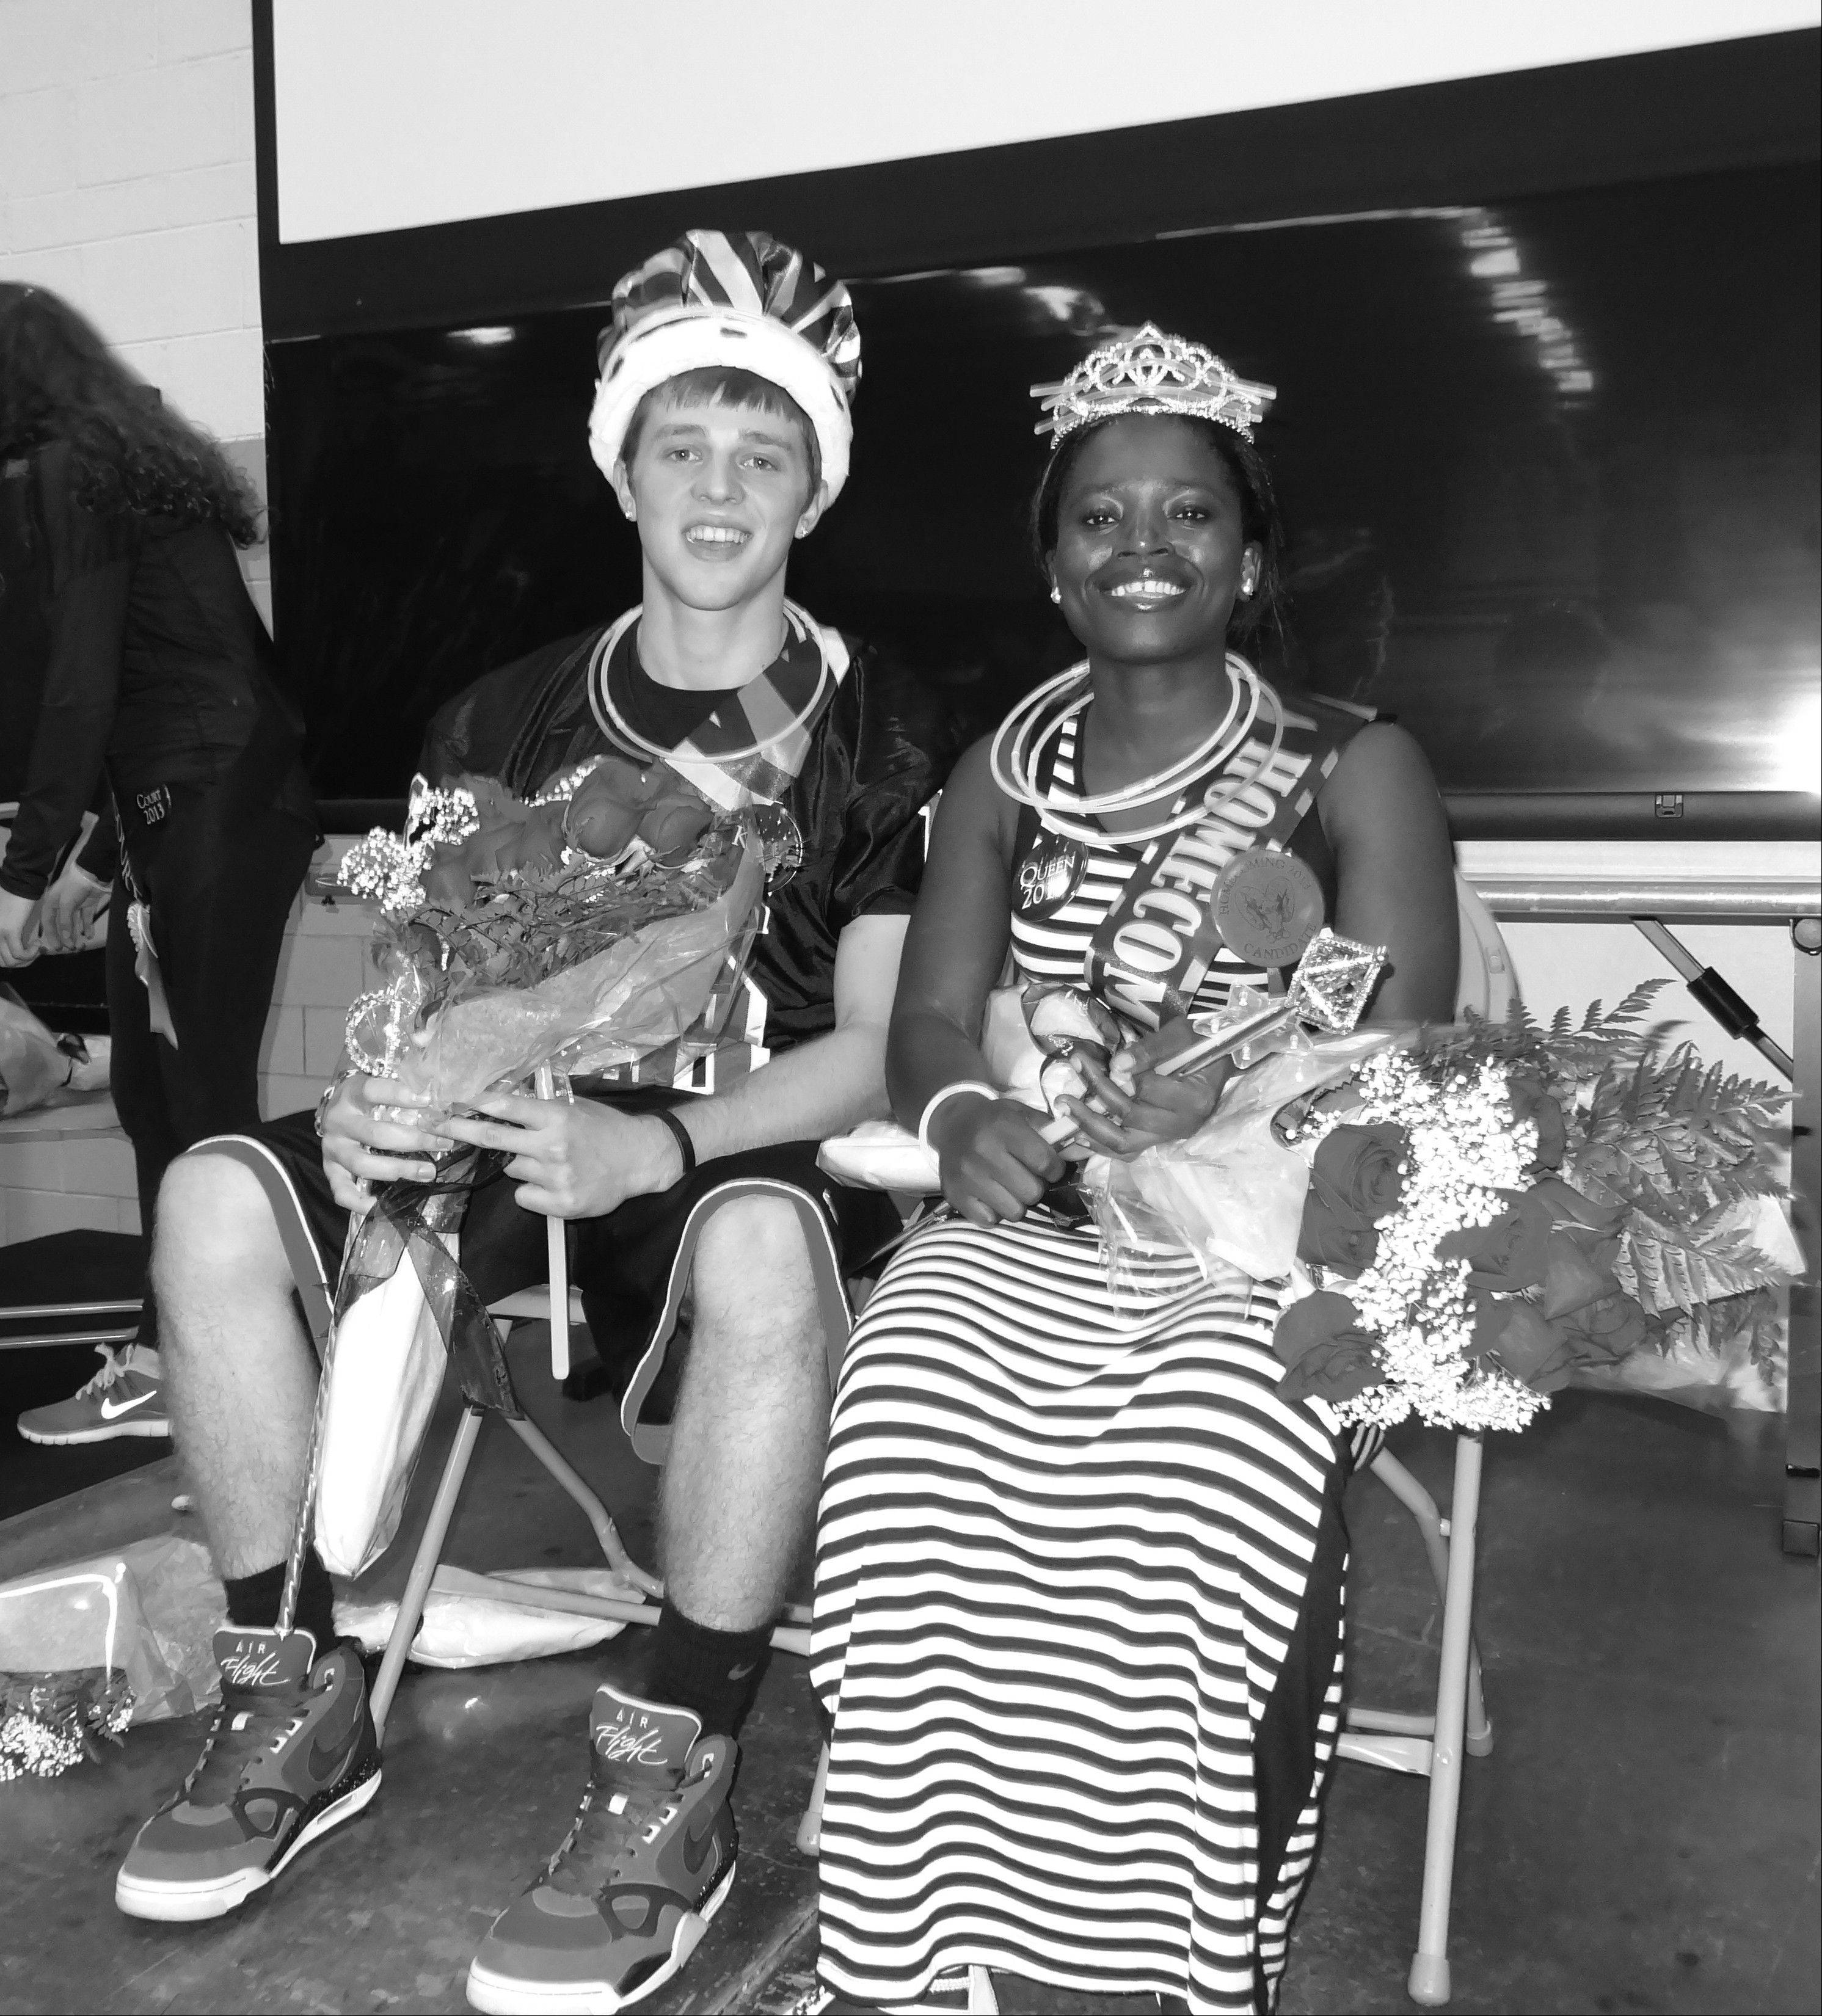 Students at Glenbard East High School in Lombard selected senior Kumba Queewa, a refugee from Sierra Leone, as their homecoming queen.